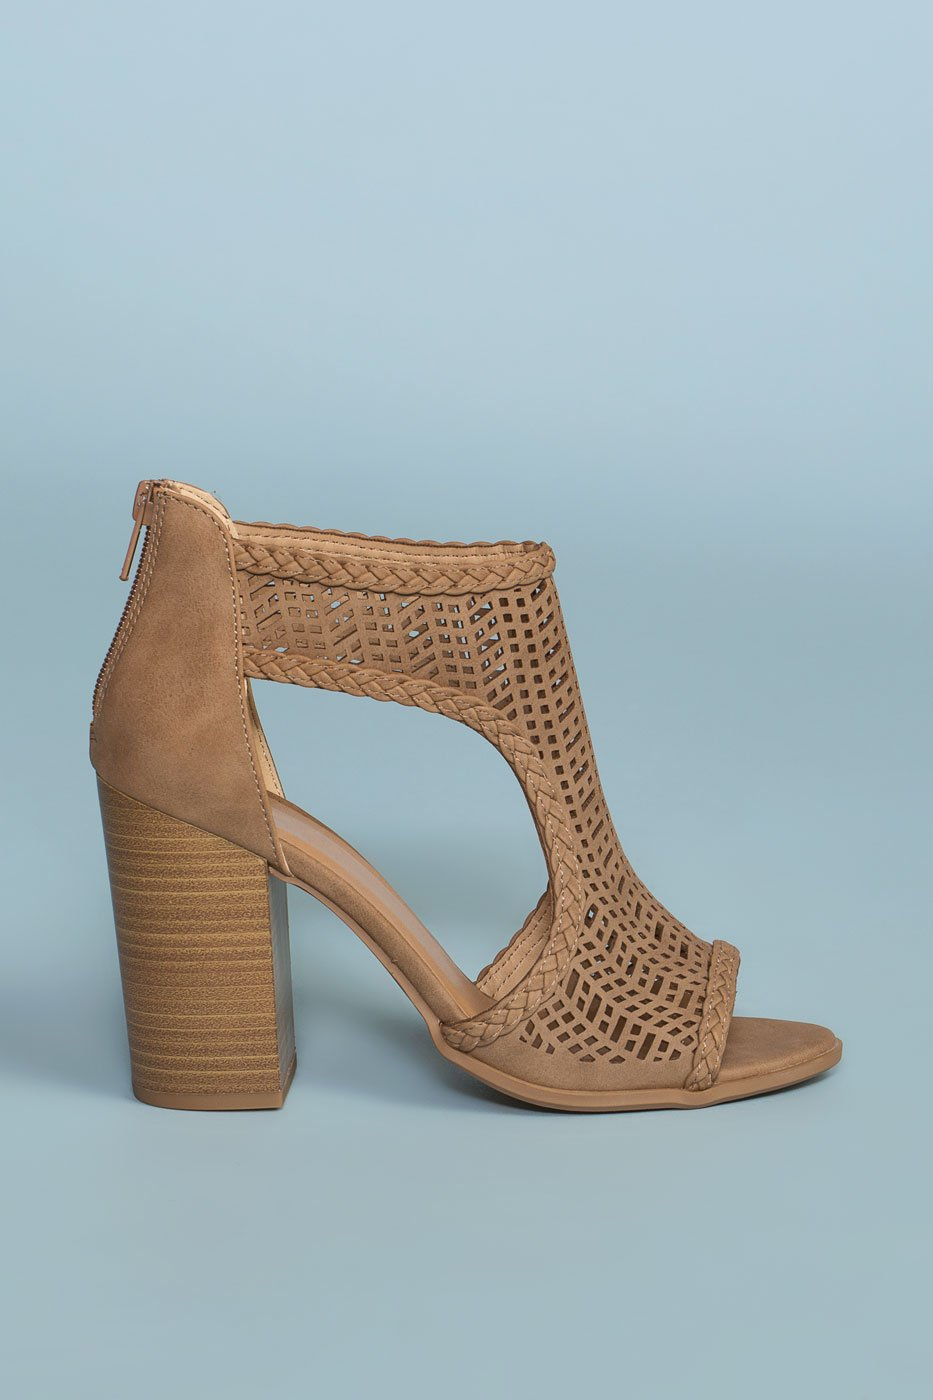 Shoes - Lennox Block Heels - Taupe